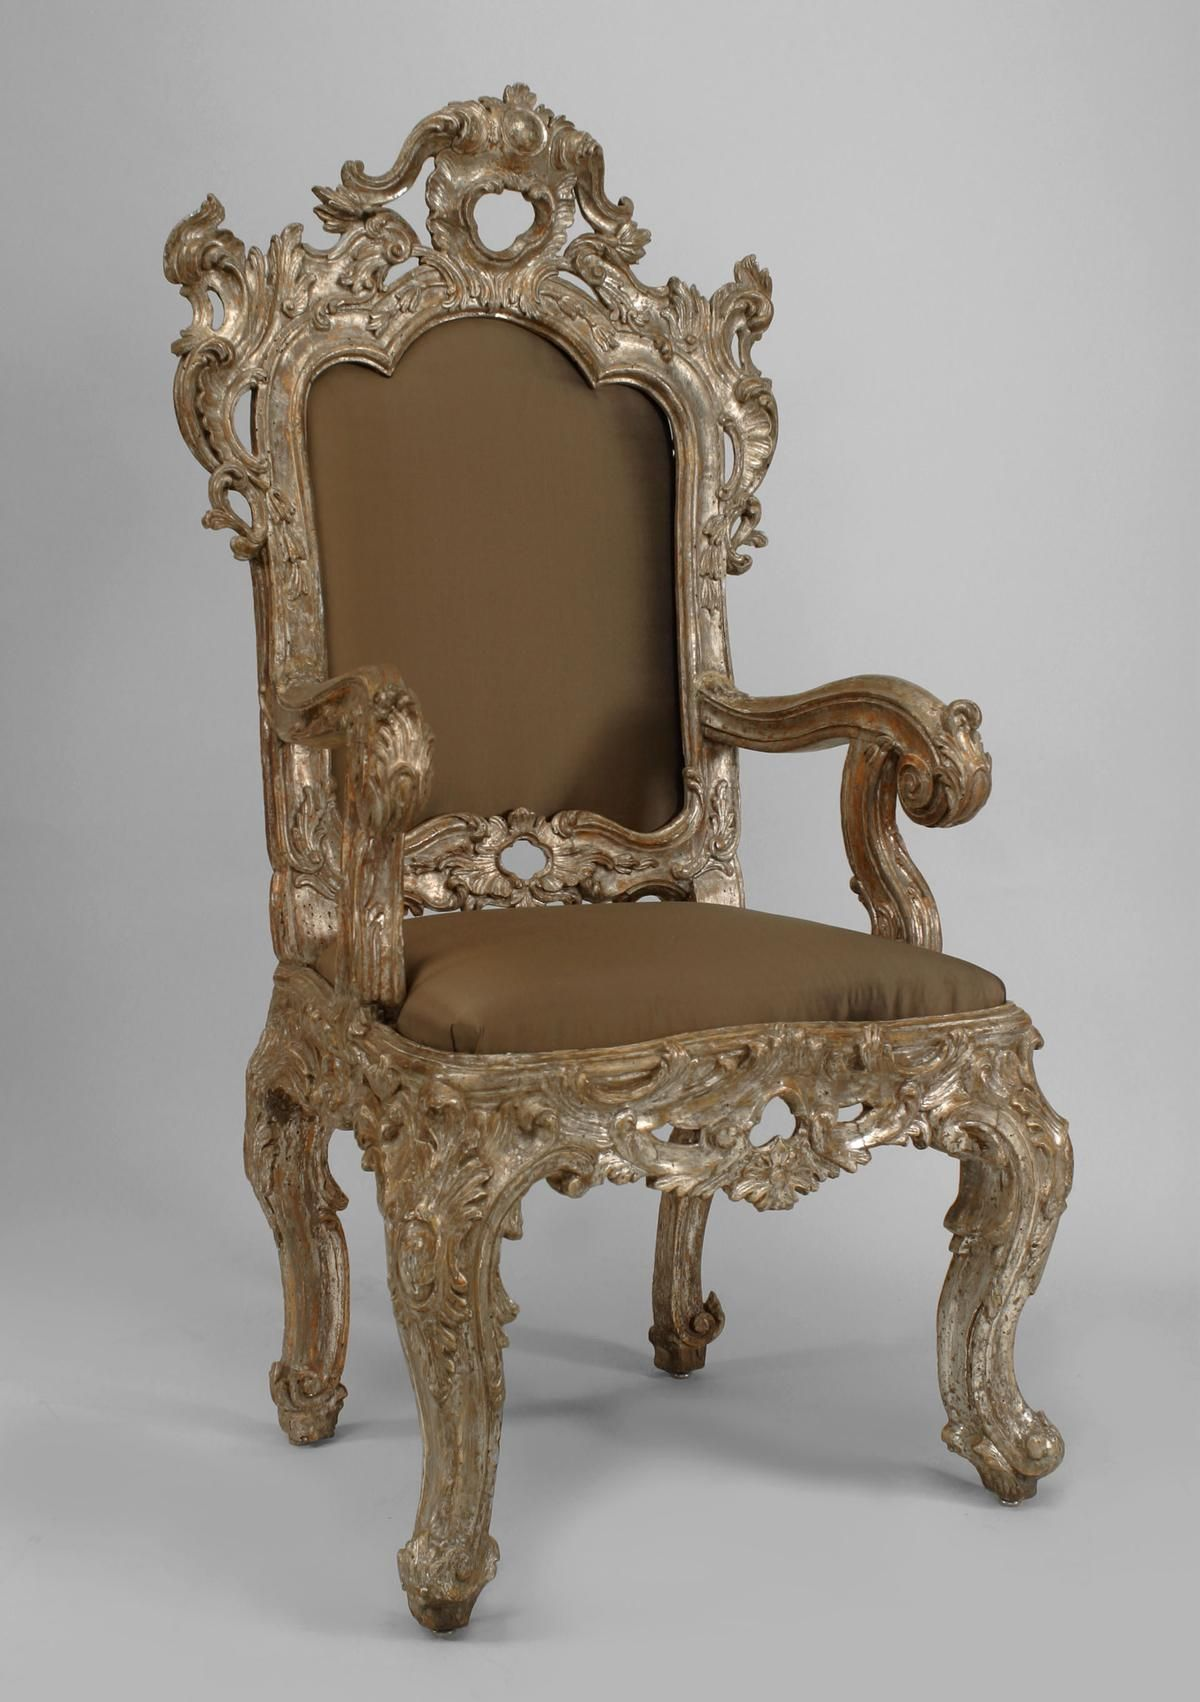 High back antique chairs - Pair Of Antique Italian Rococo High Back Silver Gilt Carved Throne Chairs With Beige Upholstered